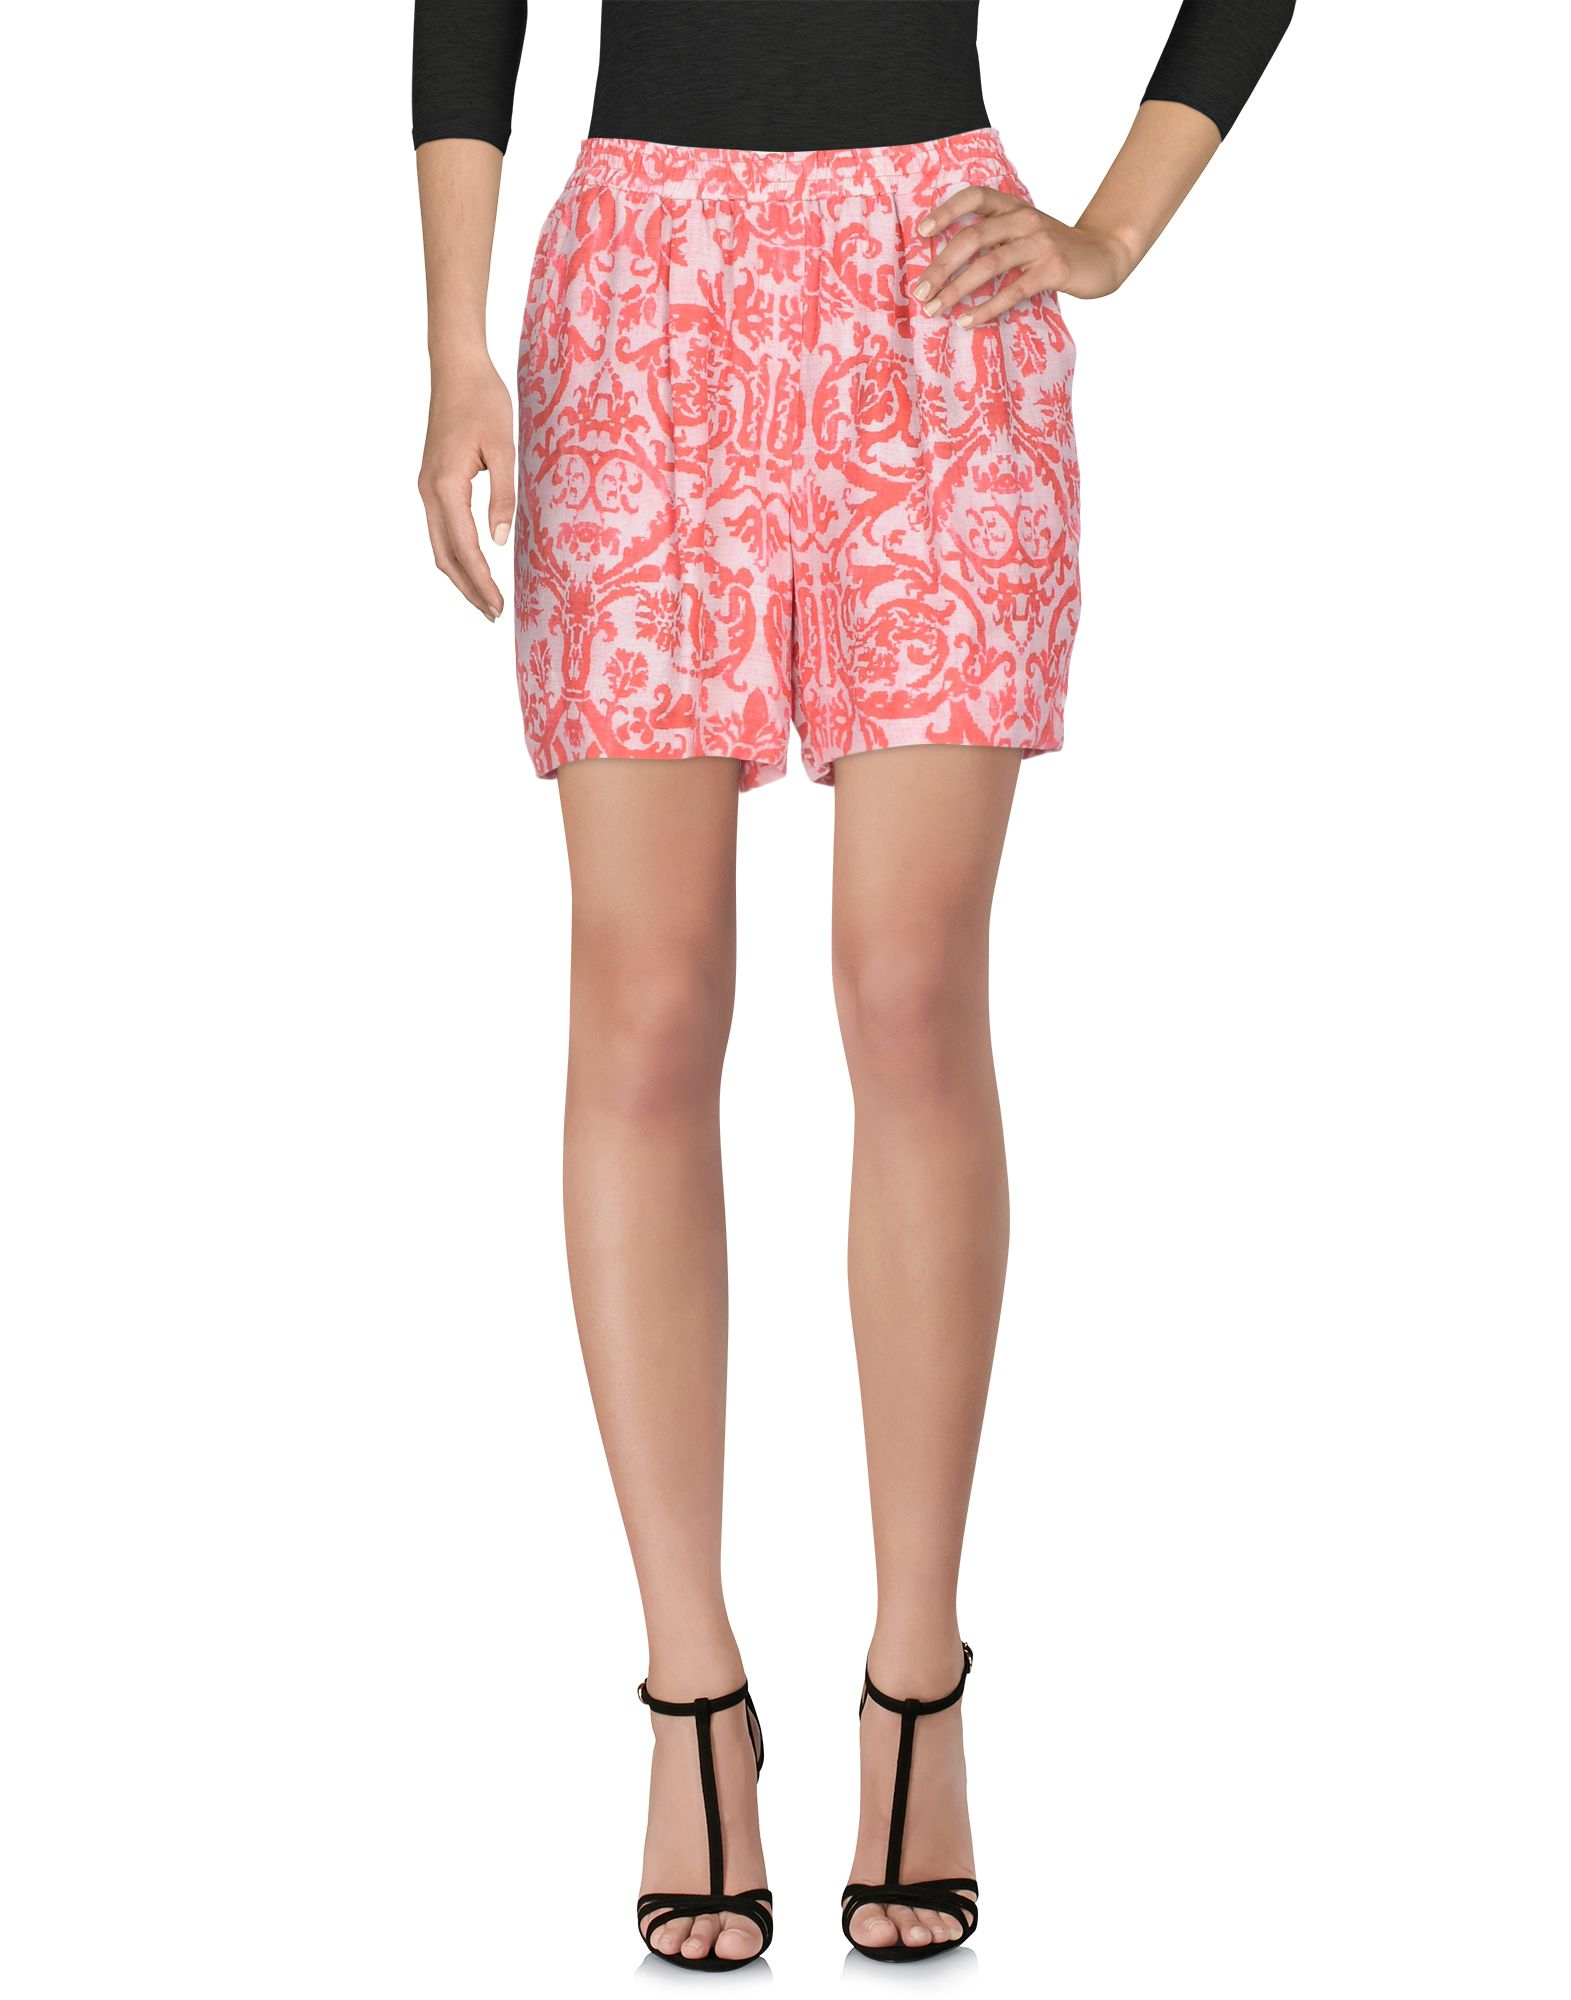 DAY BIRGER ET MIKKELSEN Shorts & Bermuda in Coral